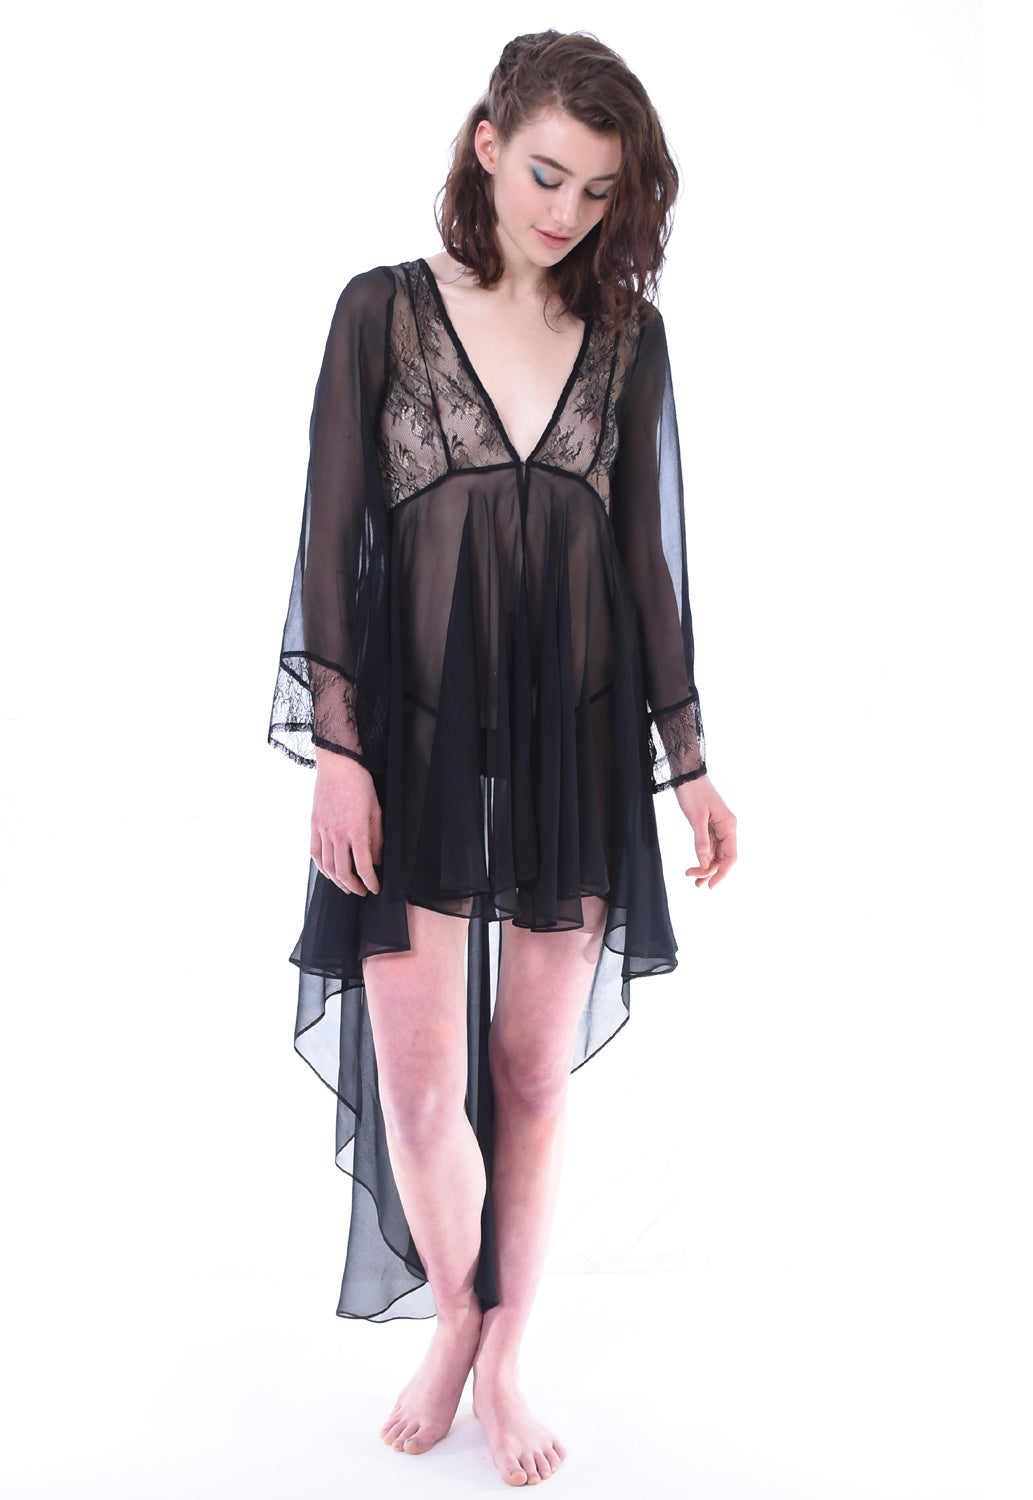 Silk Chiffon Robe - Lingerie, Tights, Stocking, Leggings, gigi*k